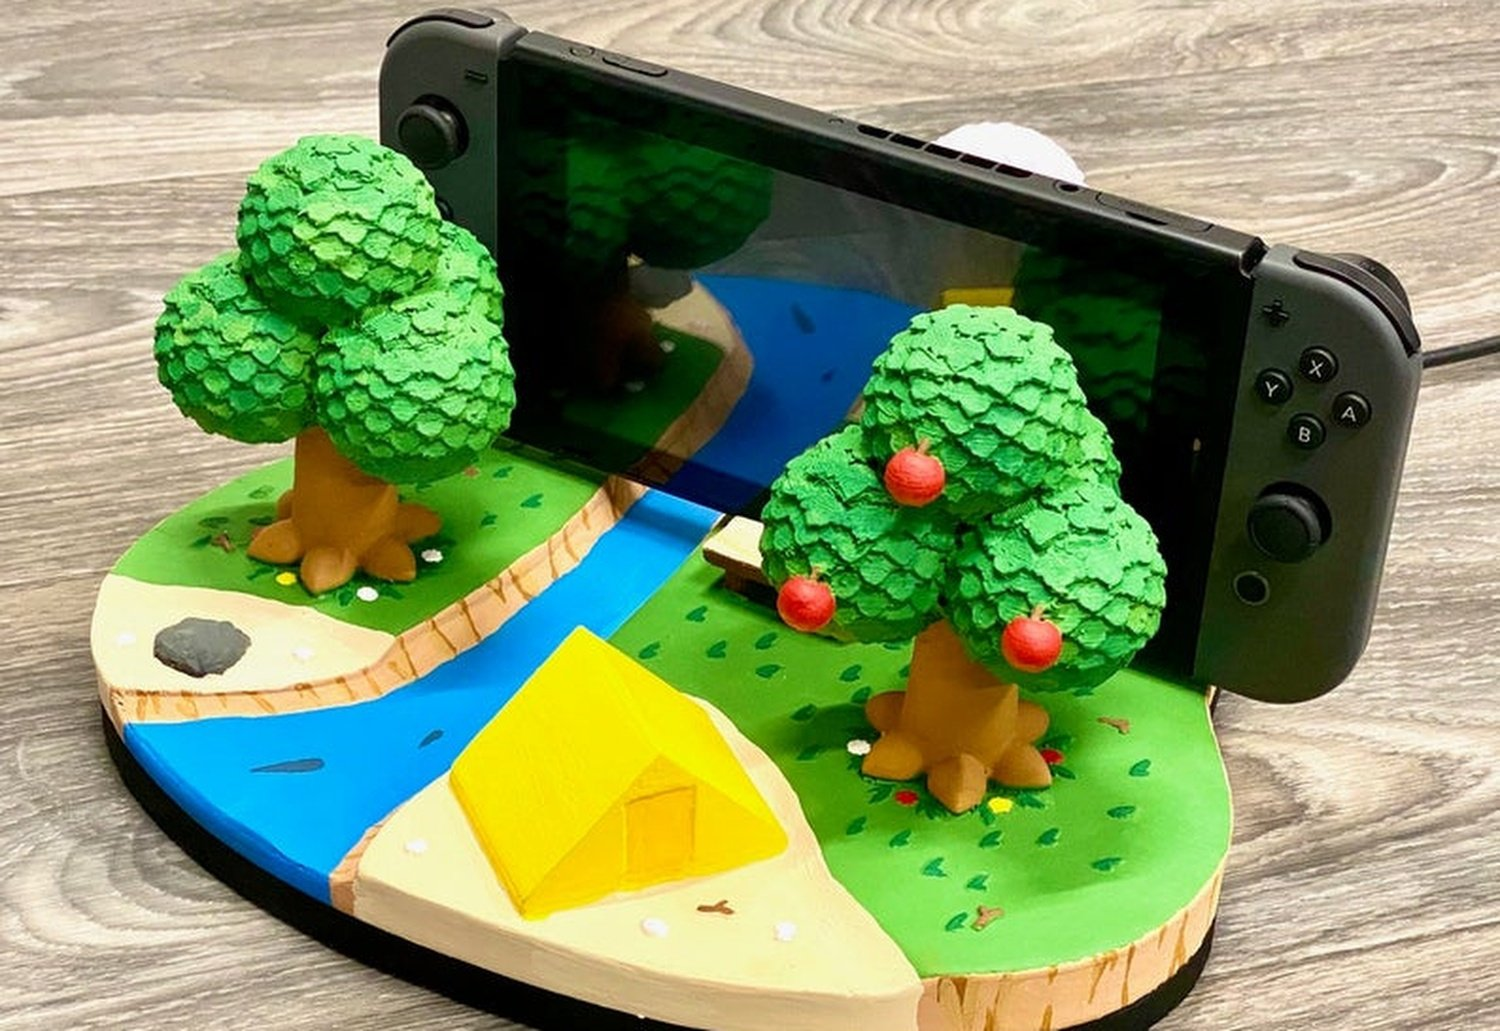 Play Animal Crossing New Horizons In Style With This Adorable